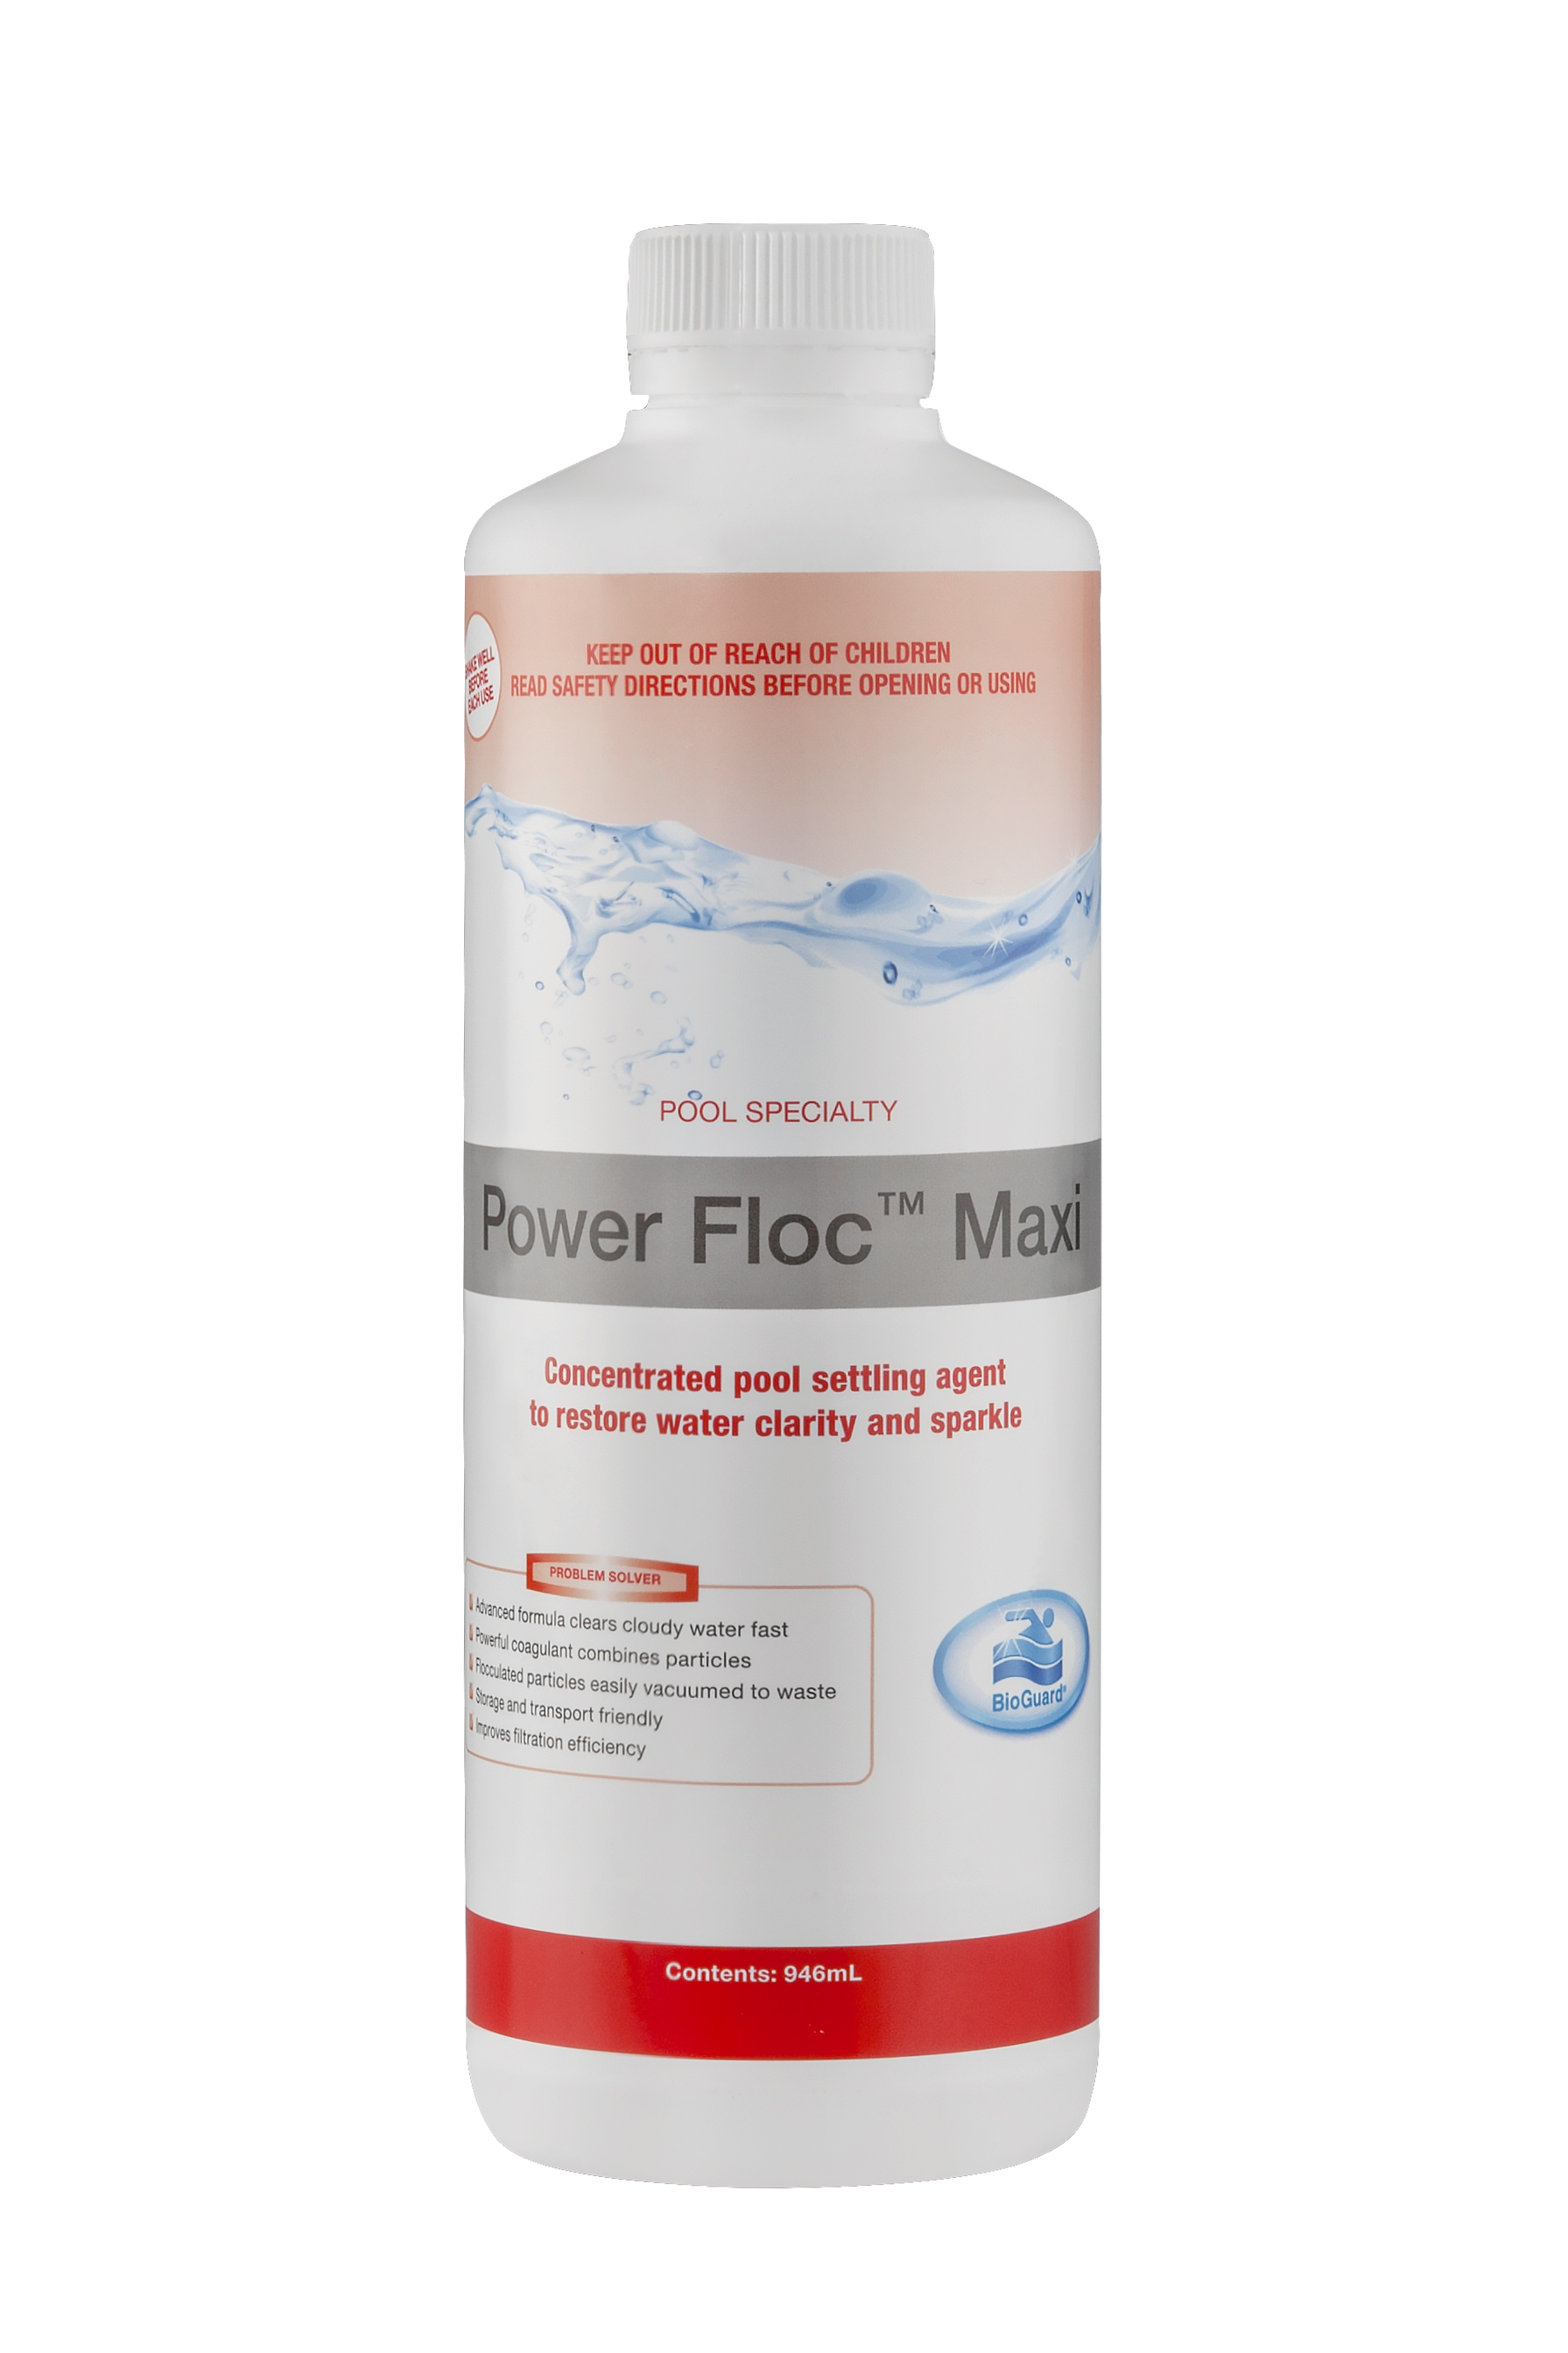 Power Floc Maxi